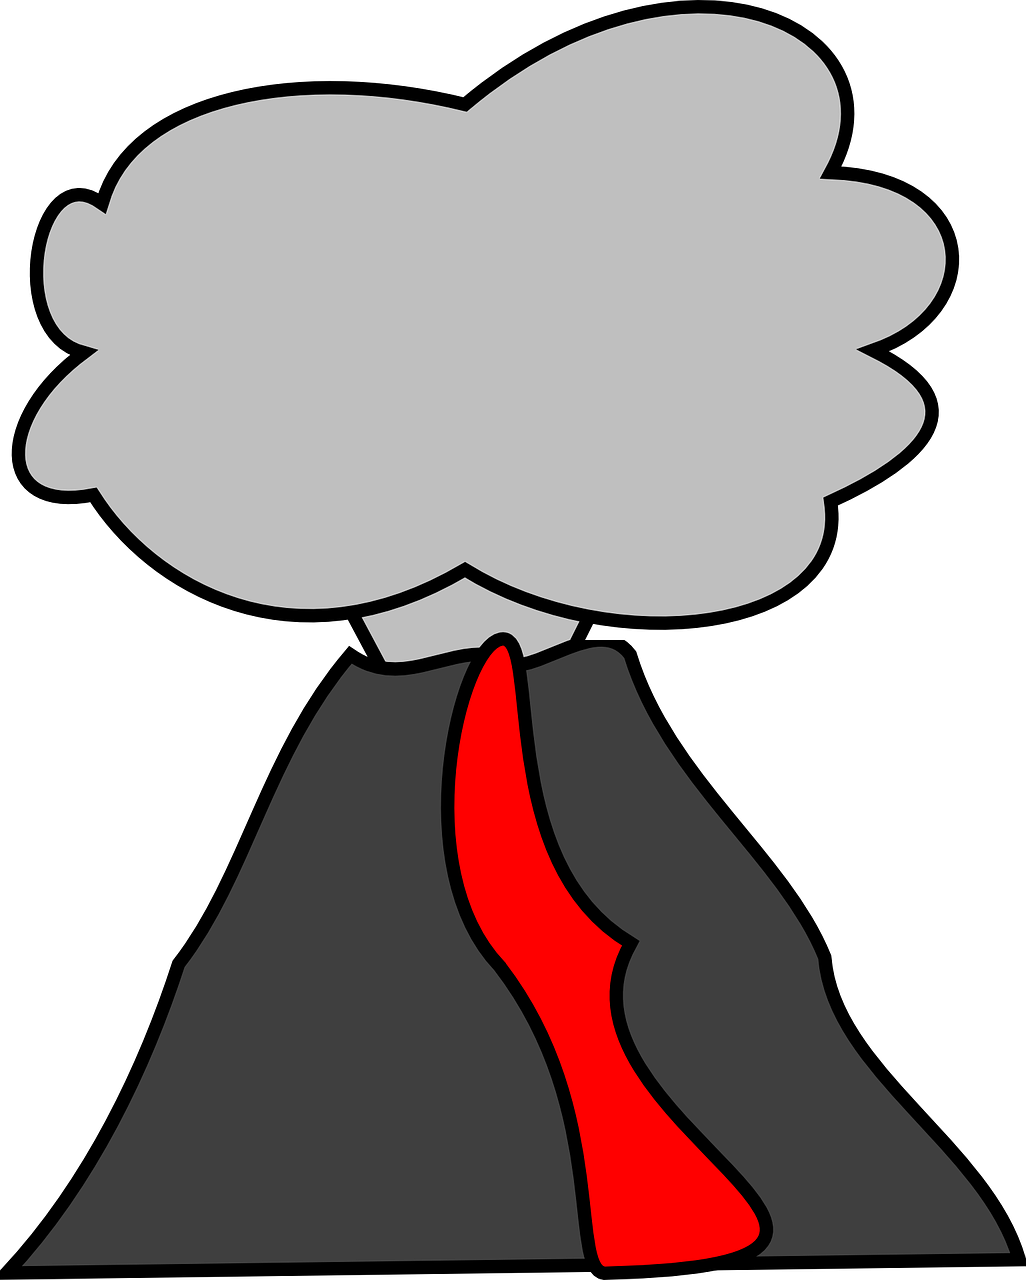 Volcano clip art free clipart images 3 3.